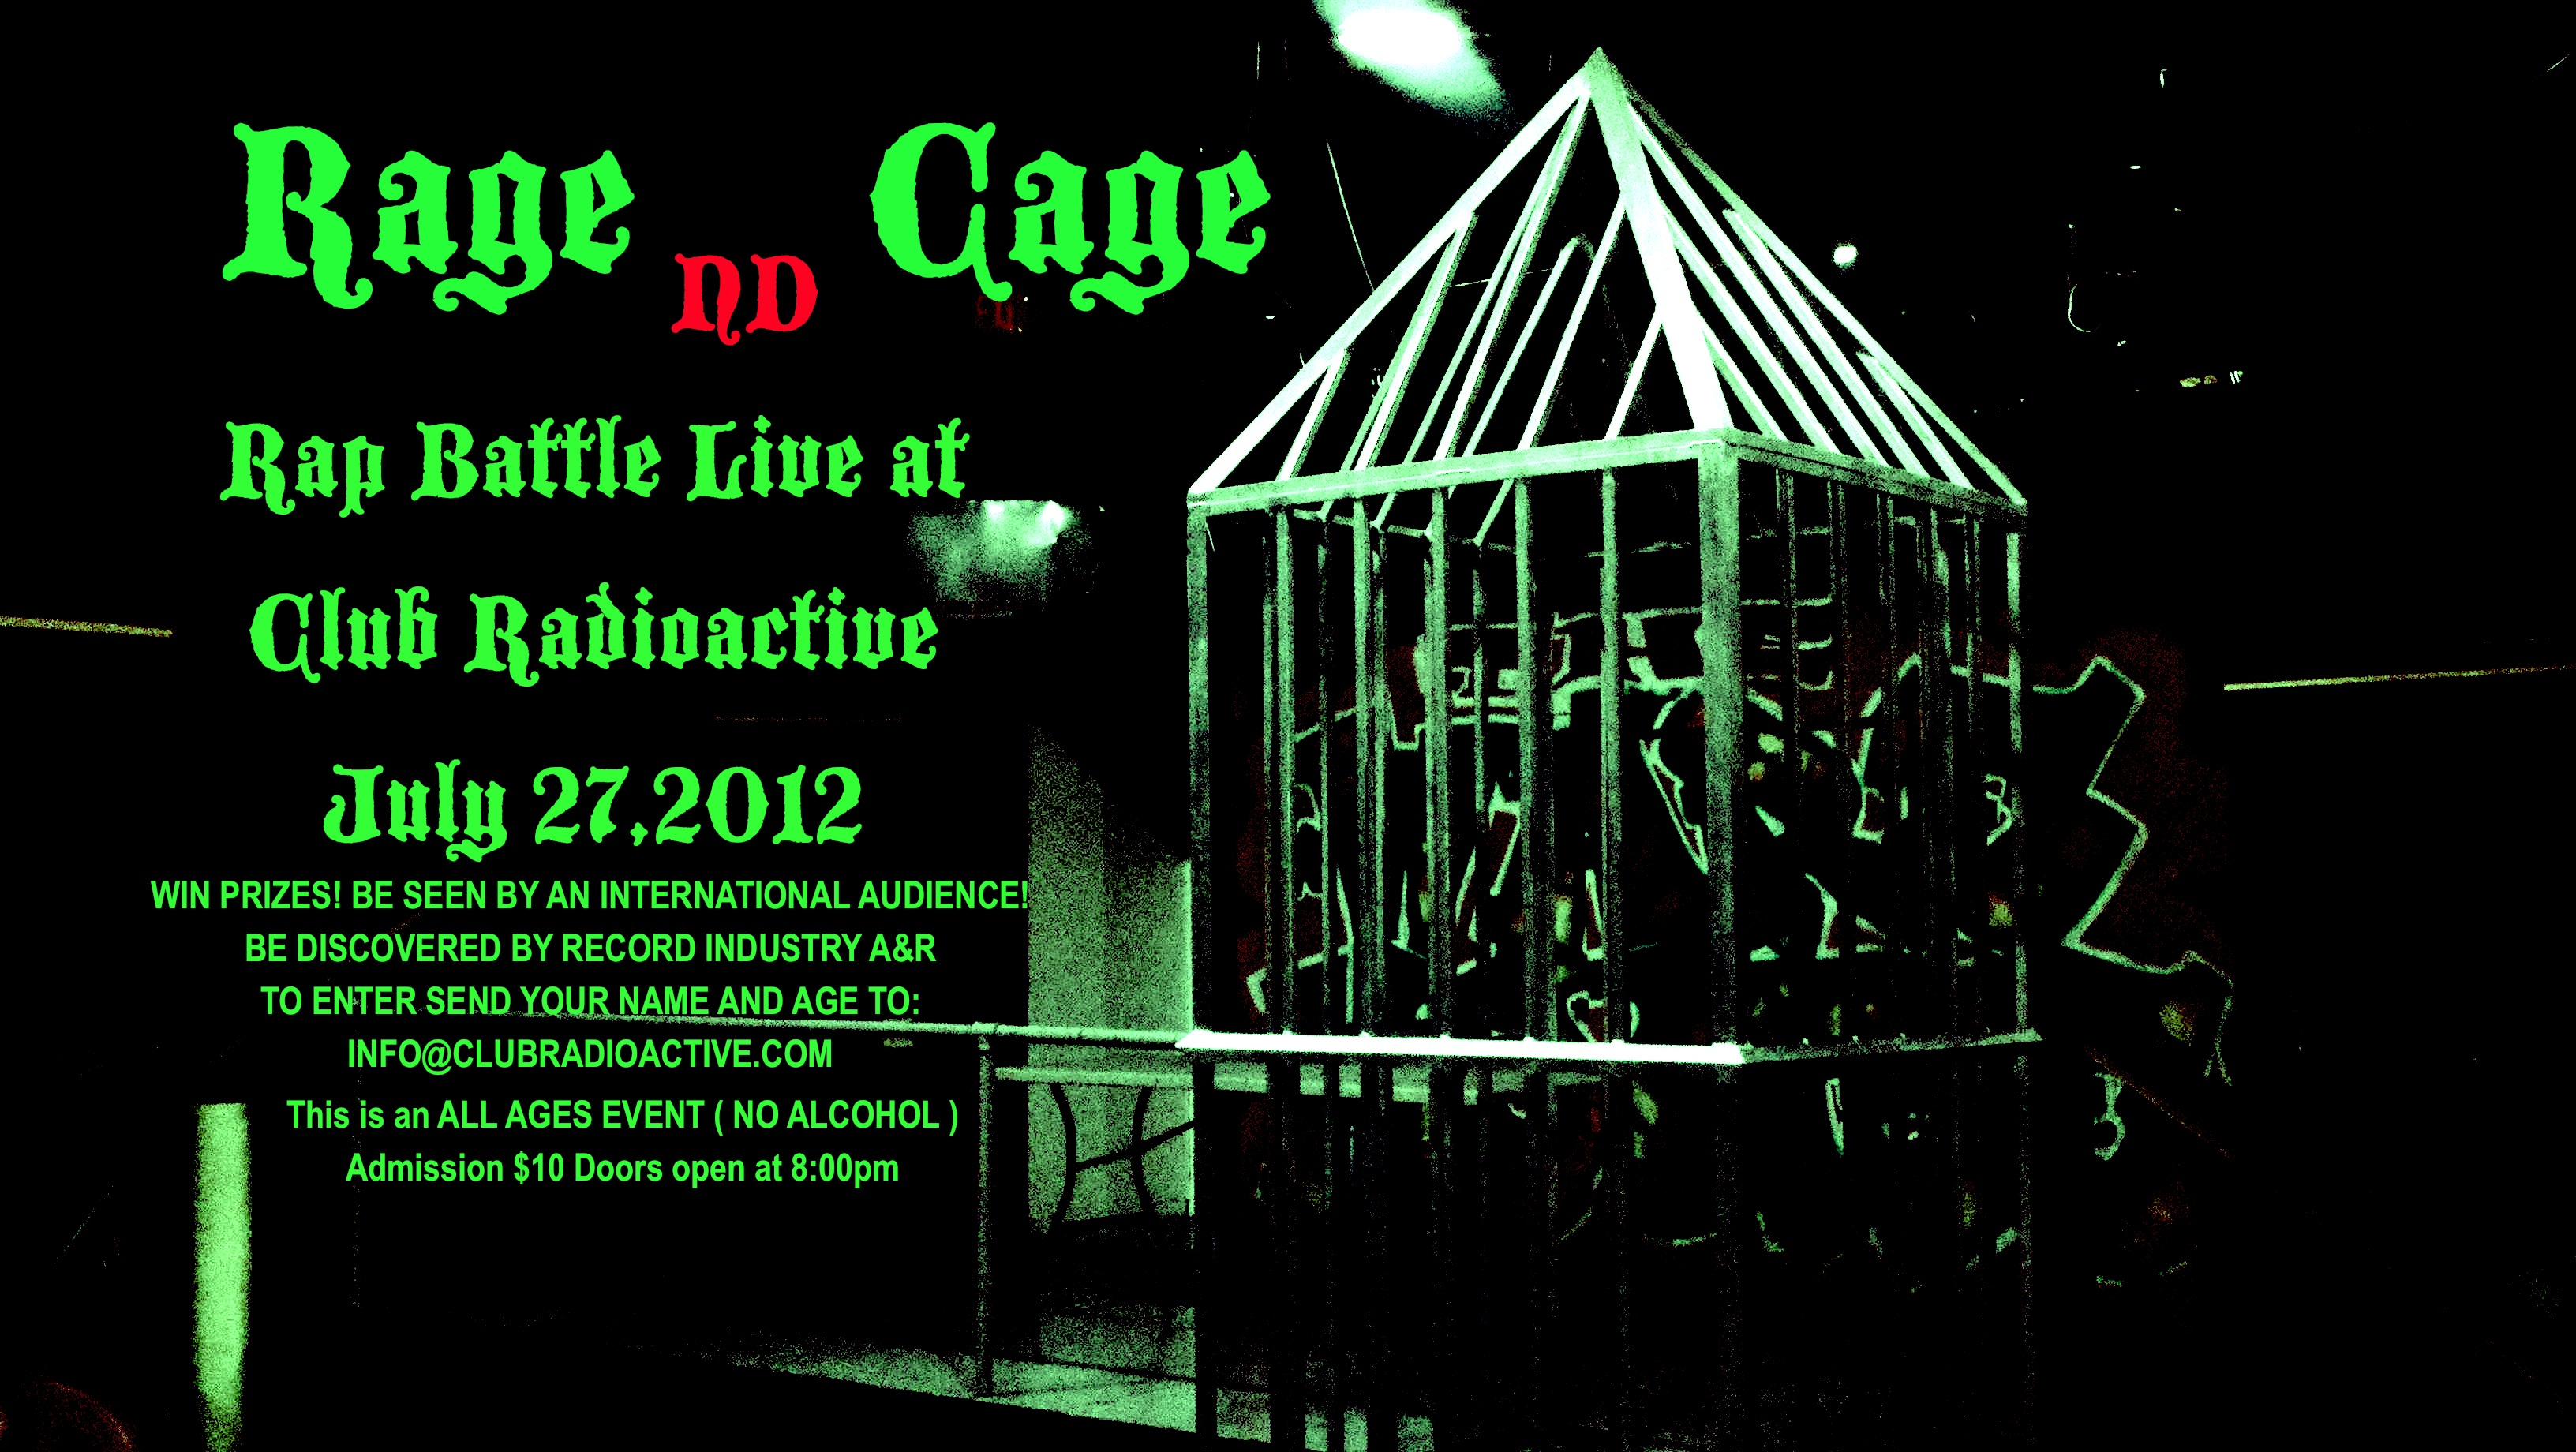 Cage, sadistik, tour, rap, rarities radio, brooklyn, oakland, ca, us